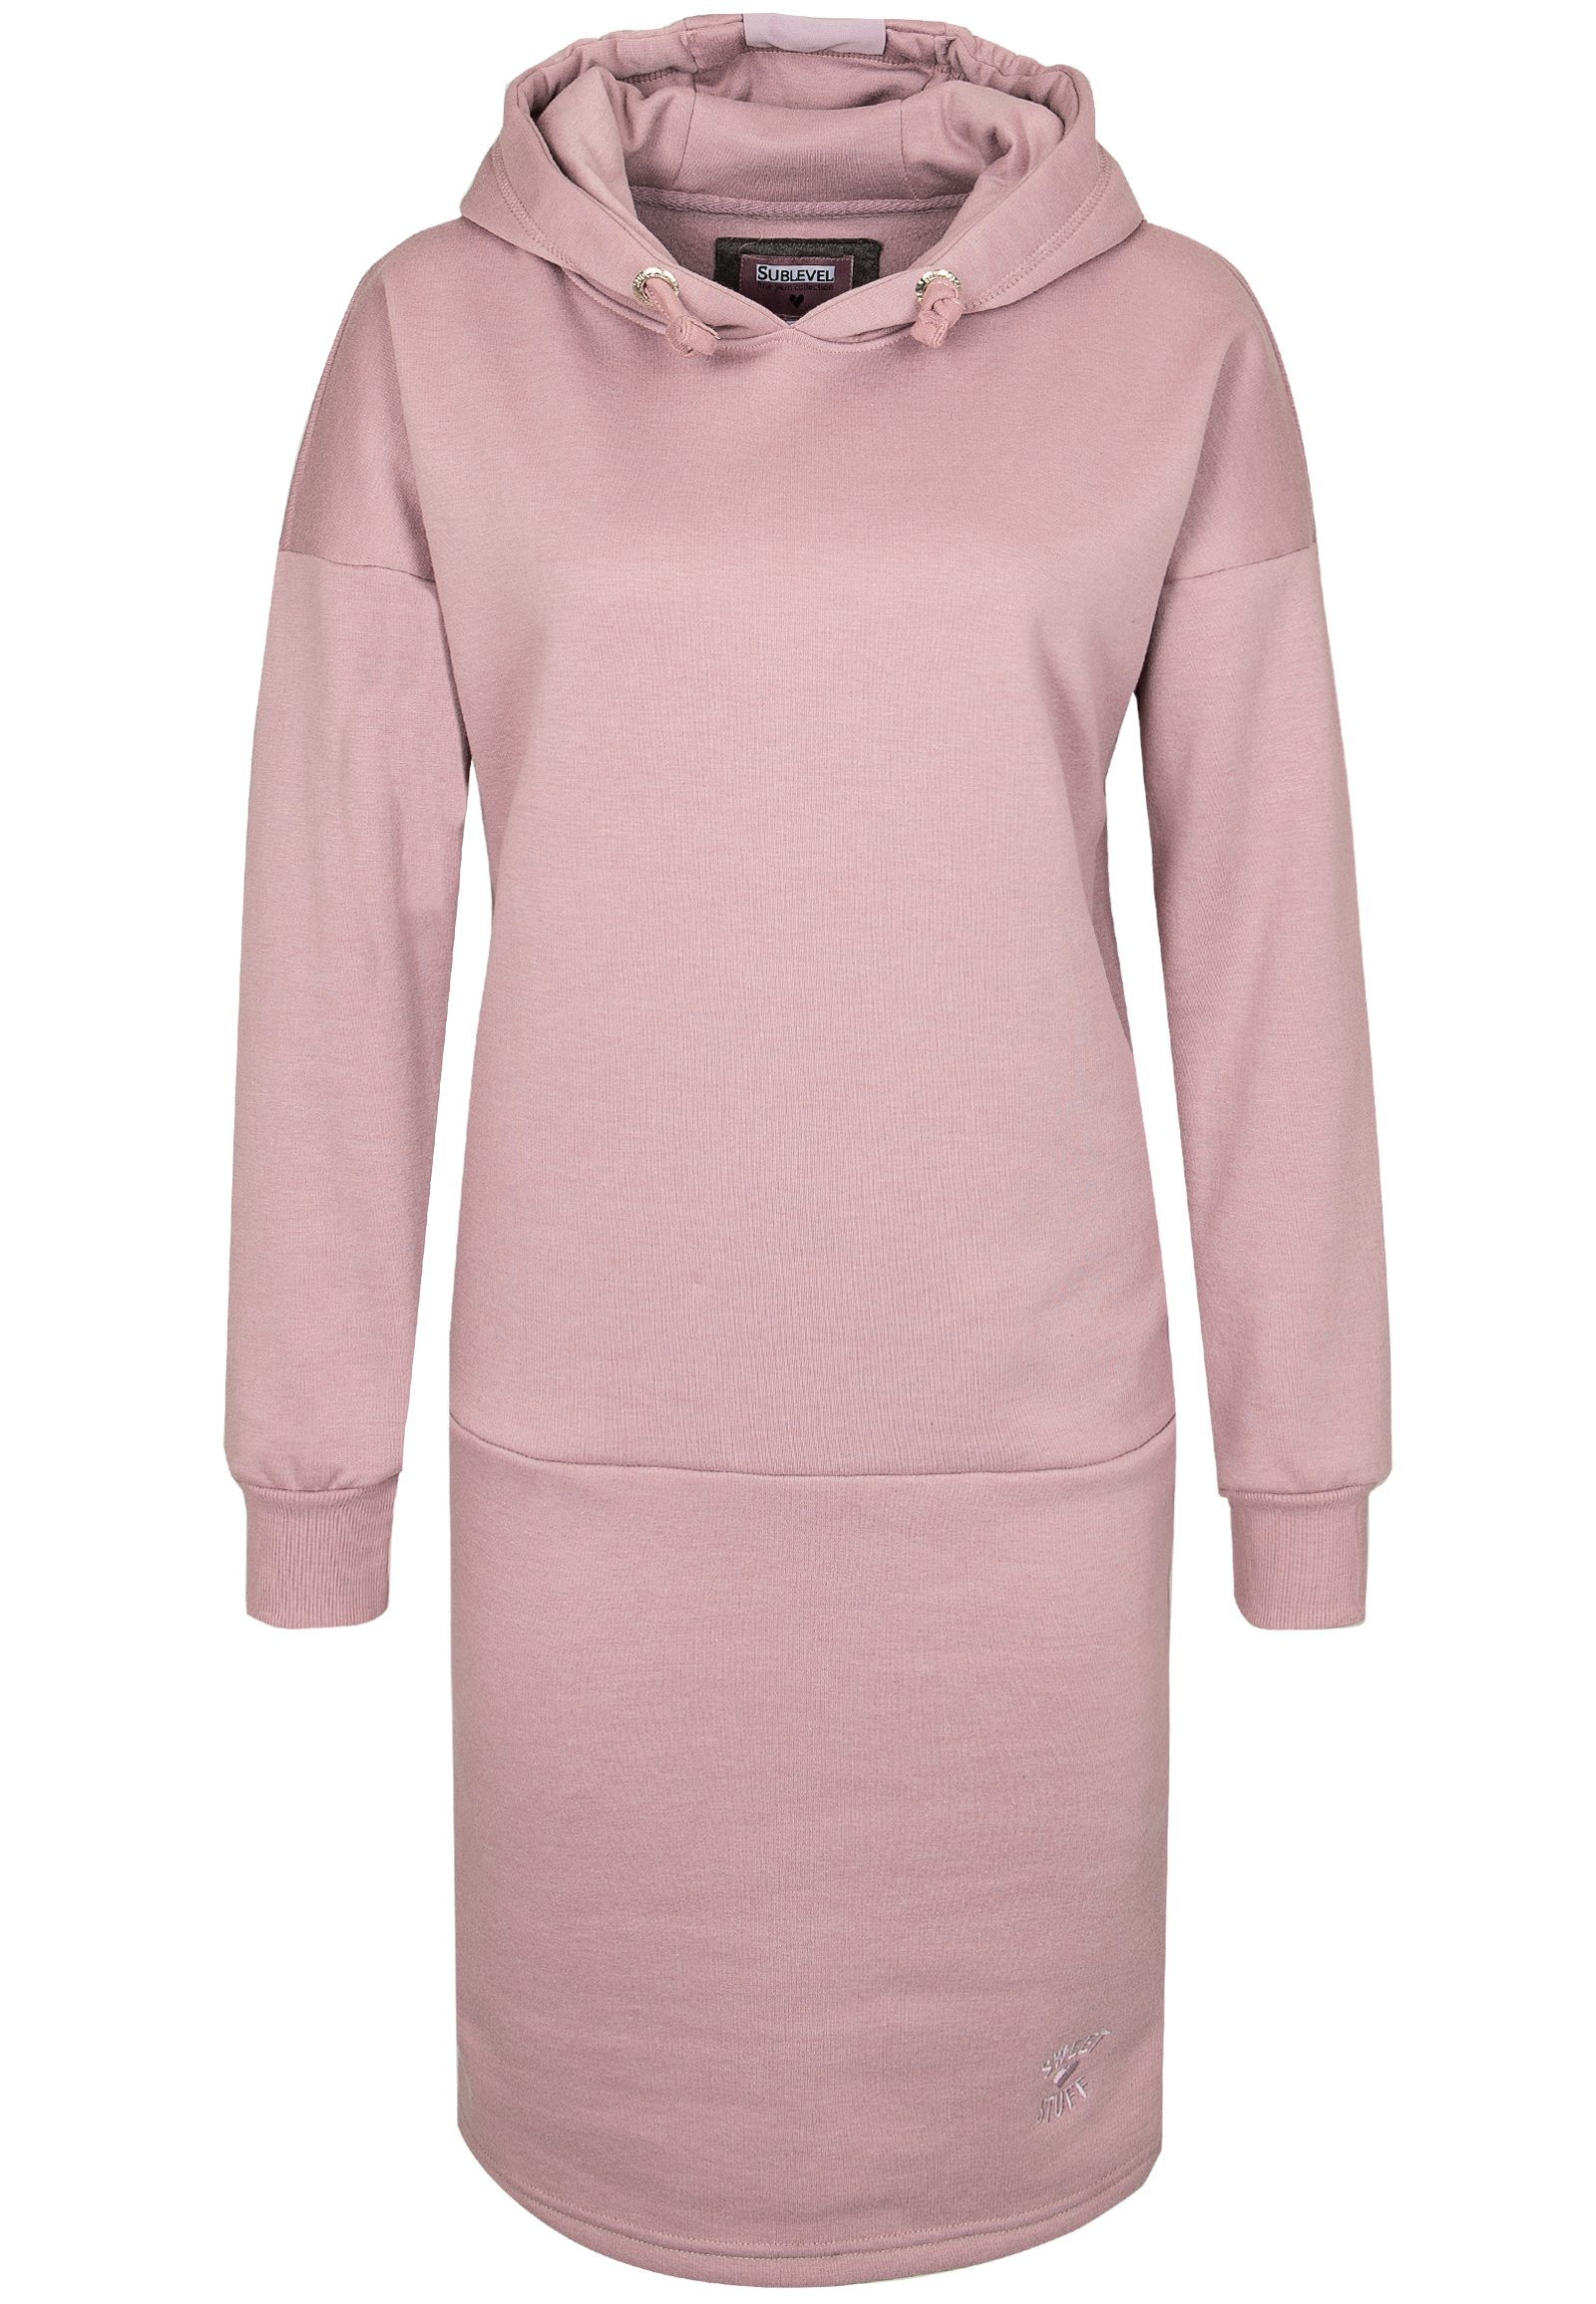 SUBLEVEL Damen Sweat Kleid mit Kapuze rosa | 04058427583565